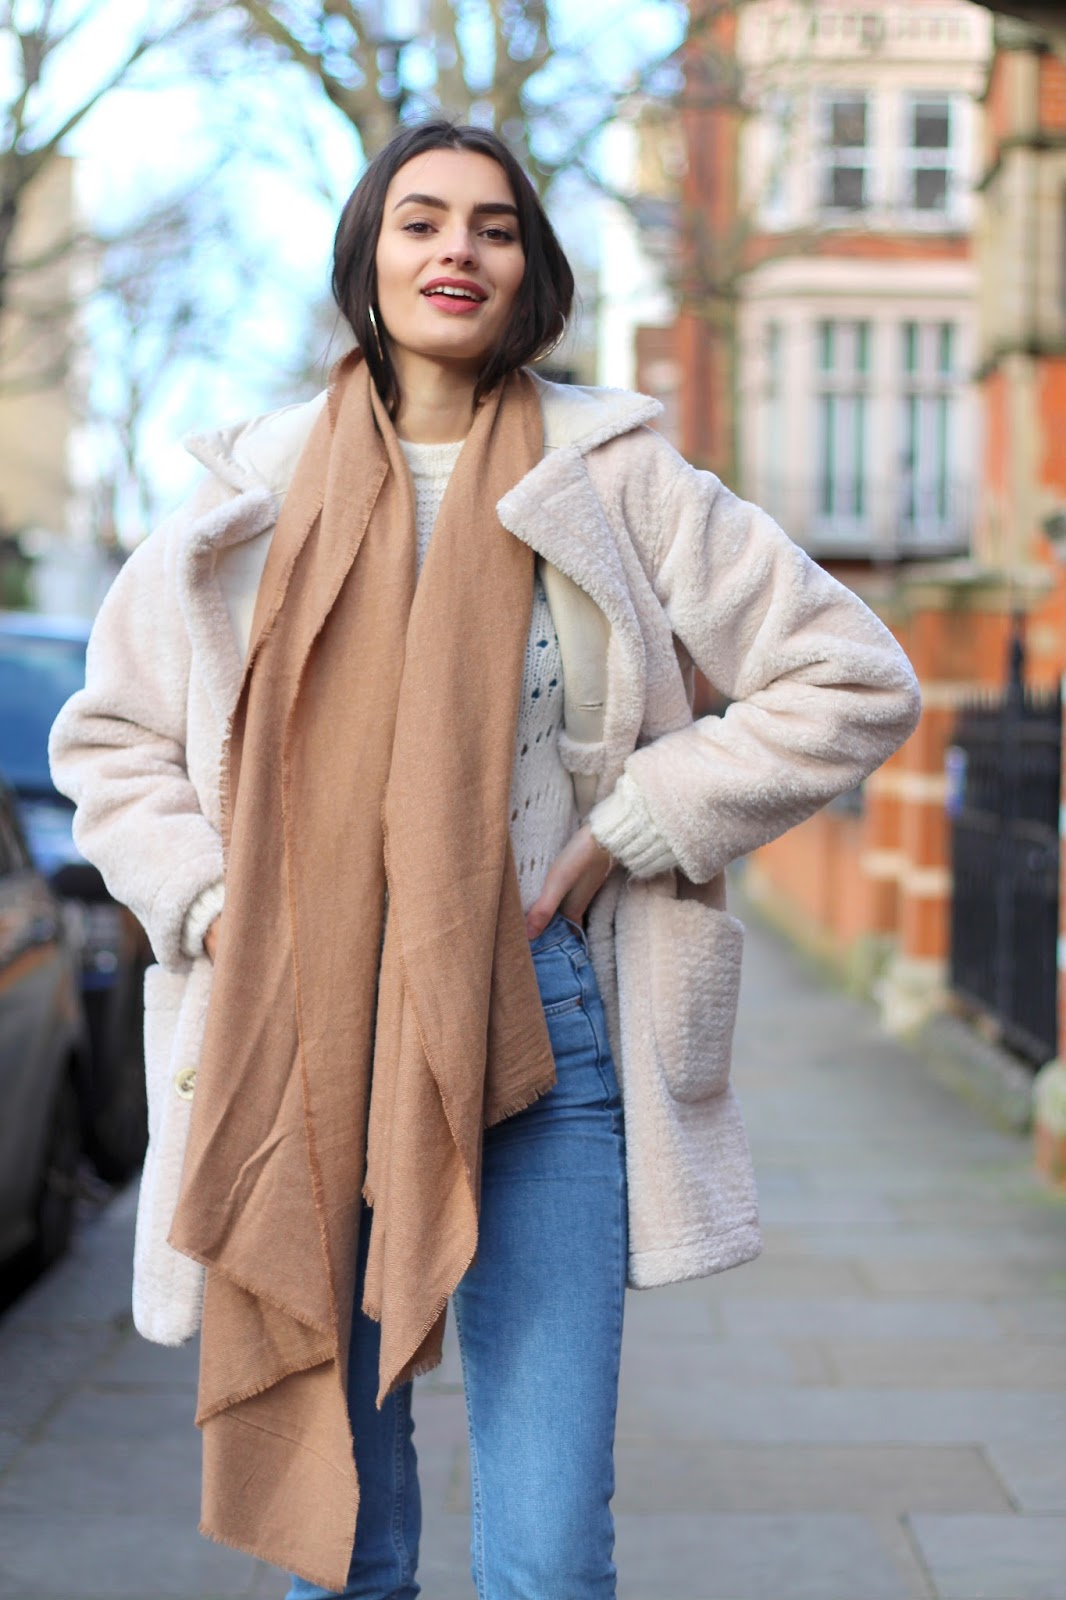 peexo personal style blog